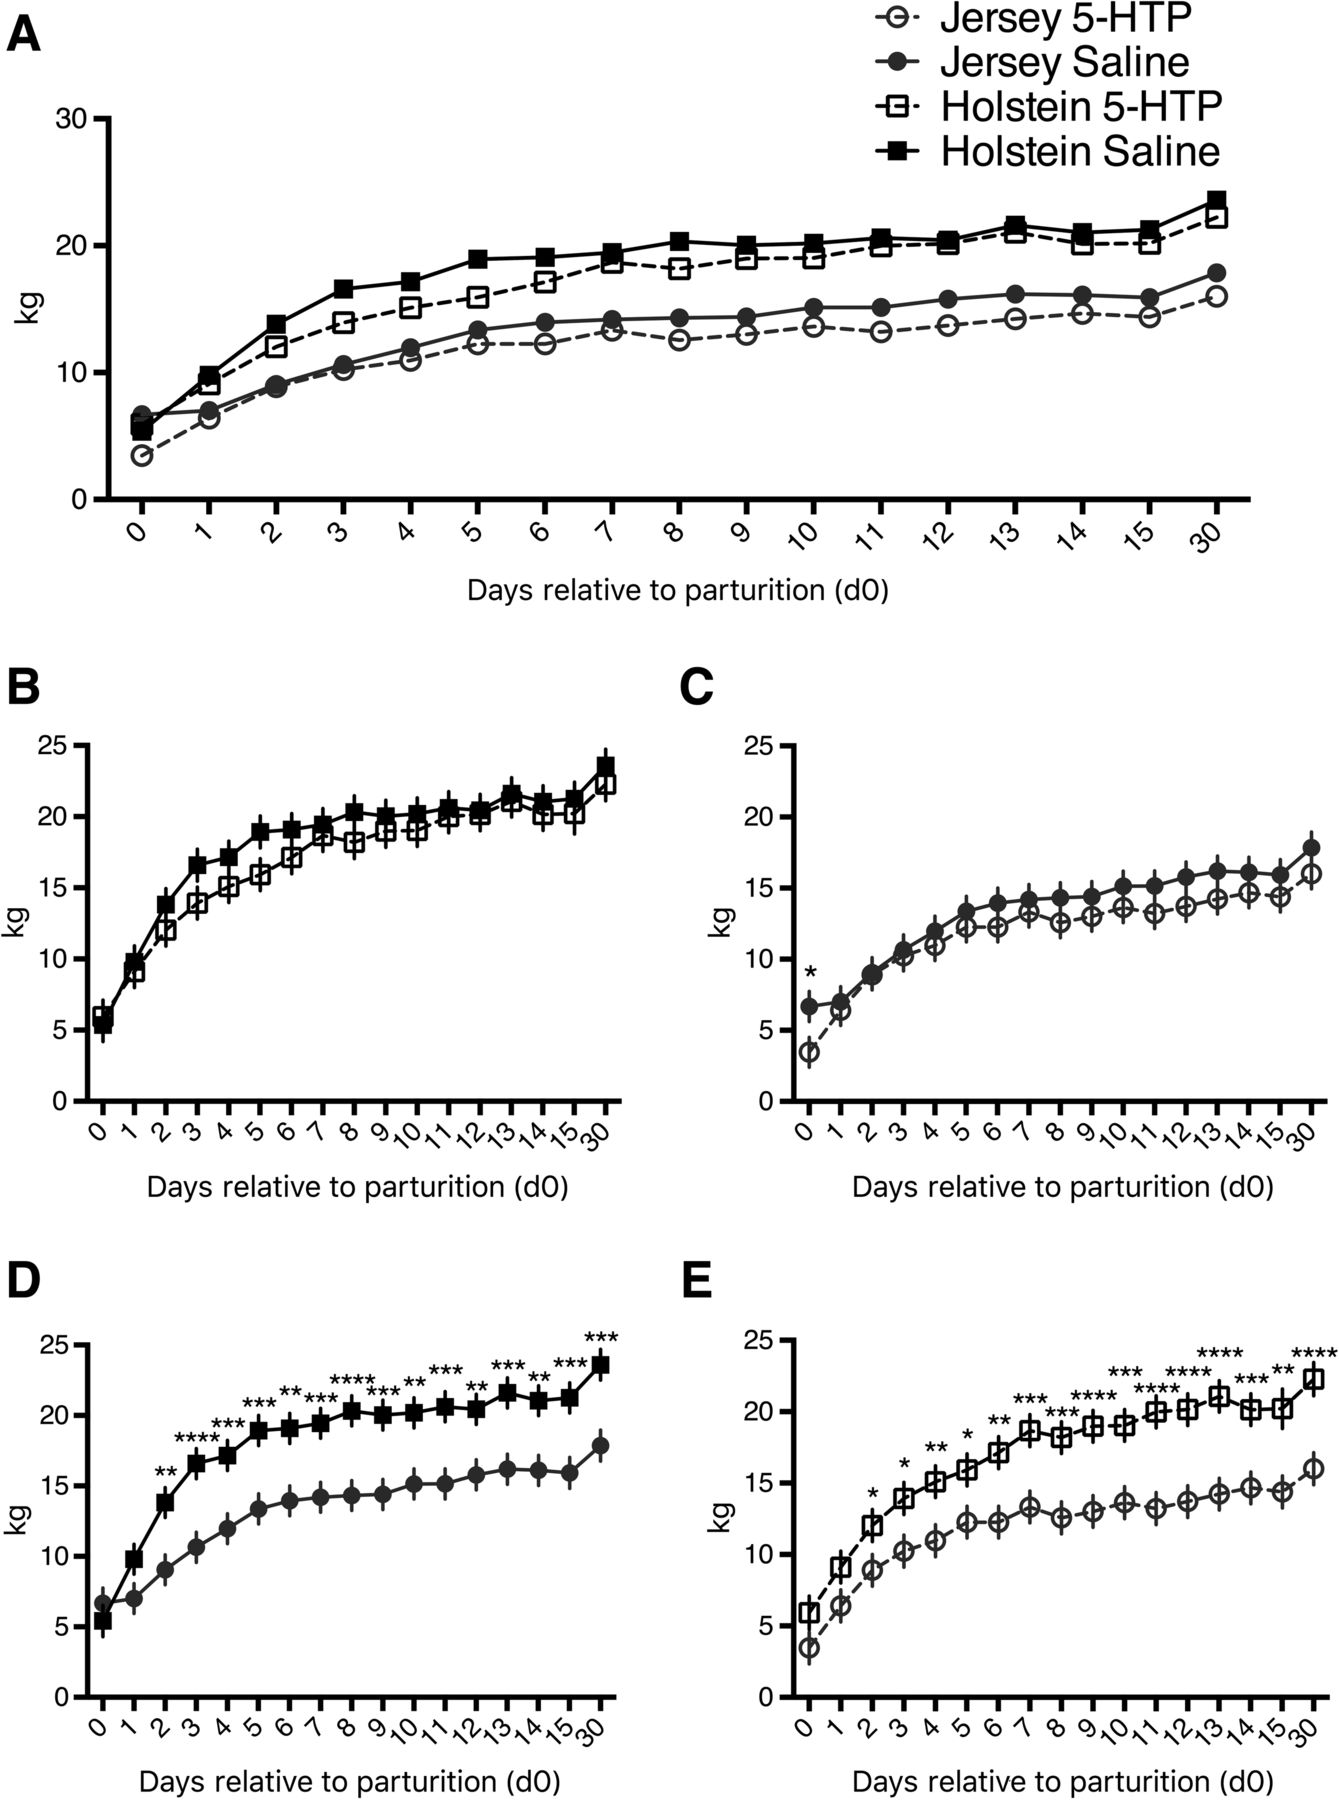 Elevation of circulating serotonin improves calcium dynamics in the